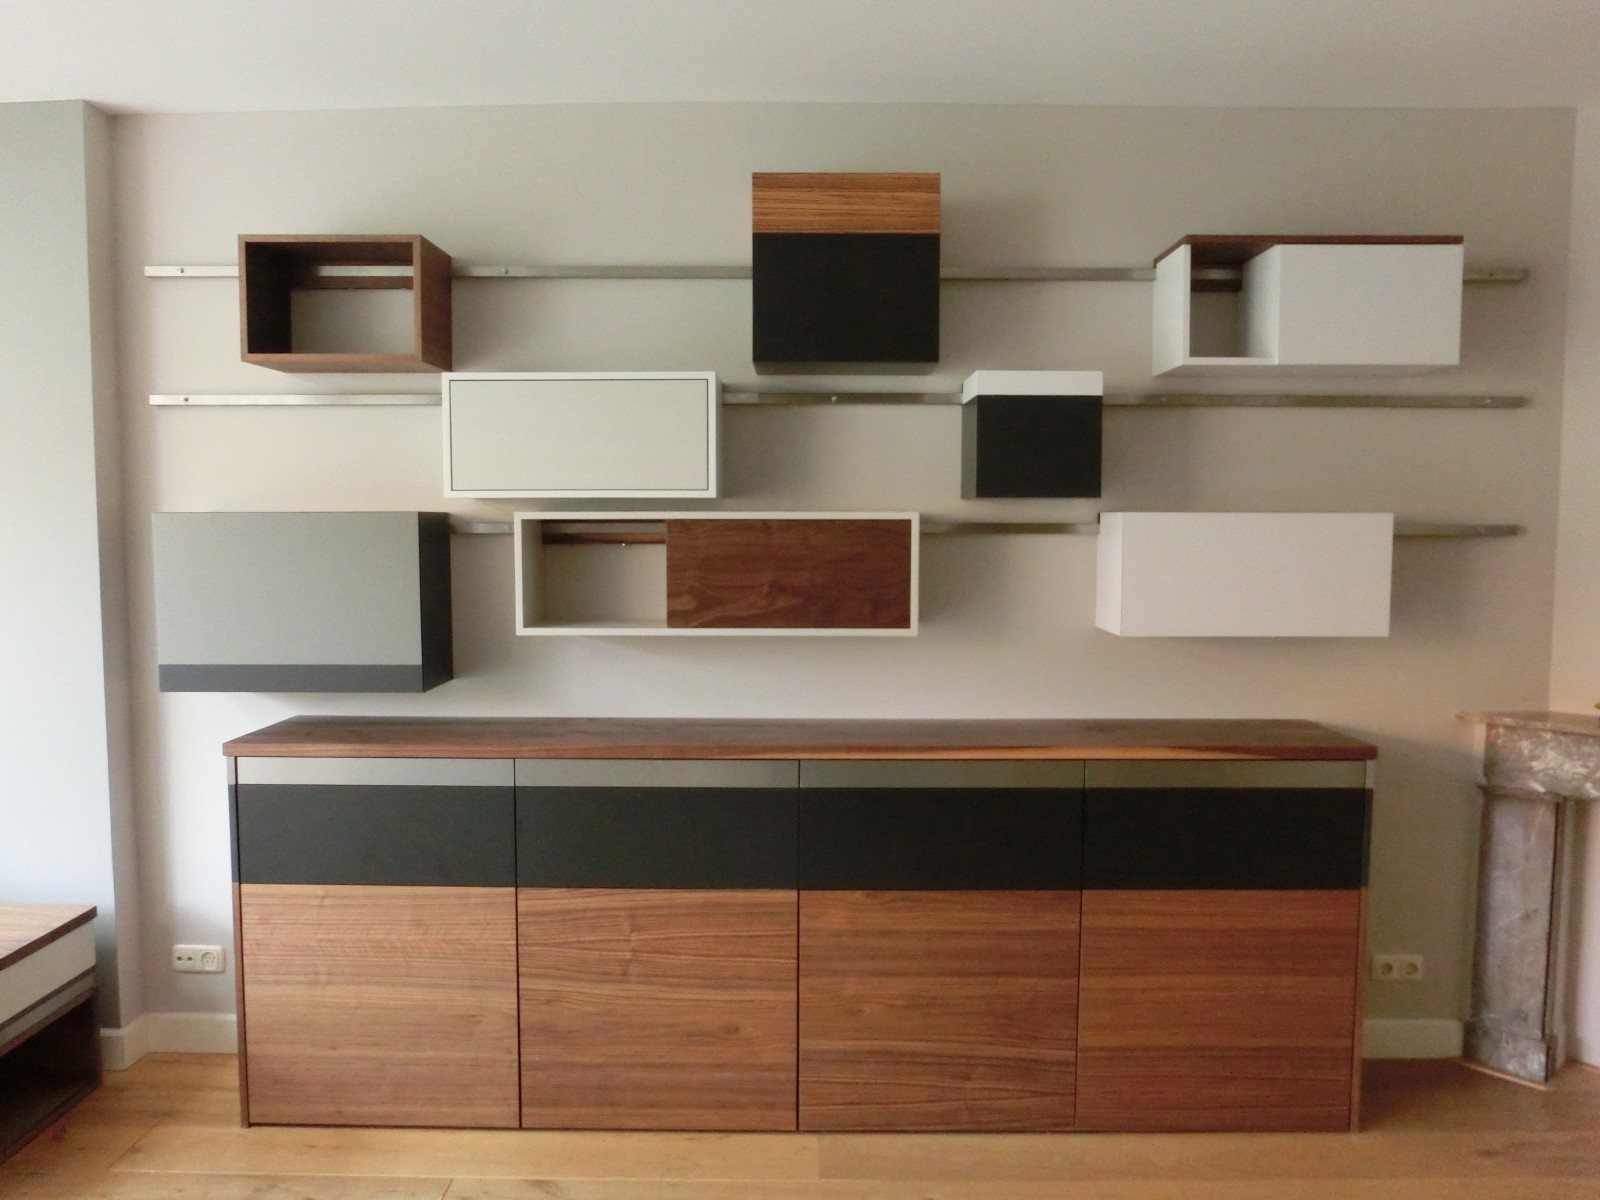 Custom made cupboards Voorburg - design and fabrication by Deuvel Design